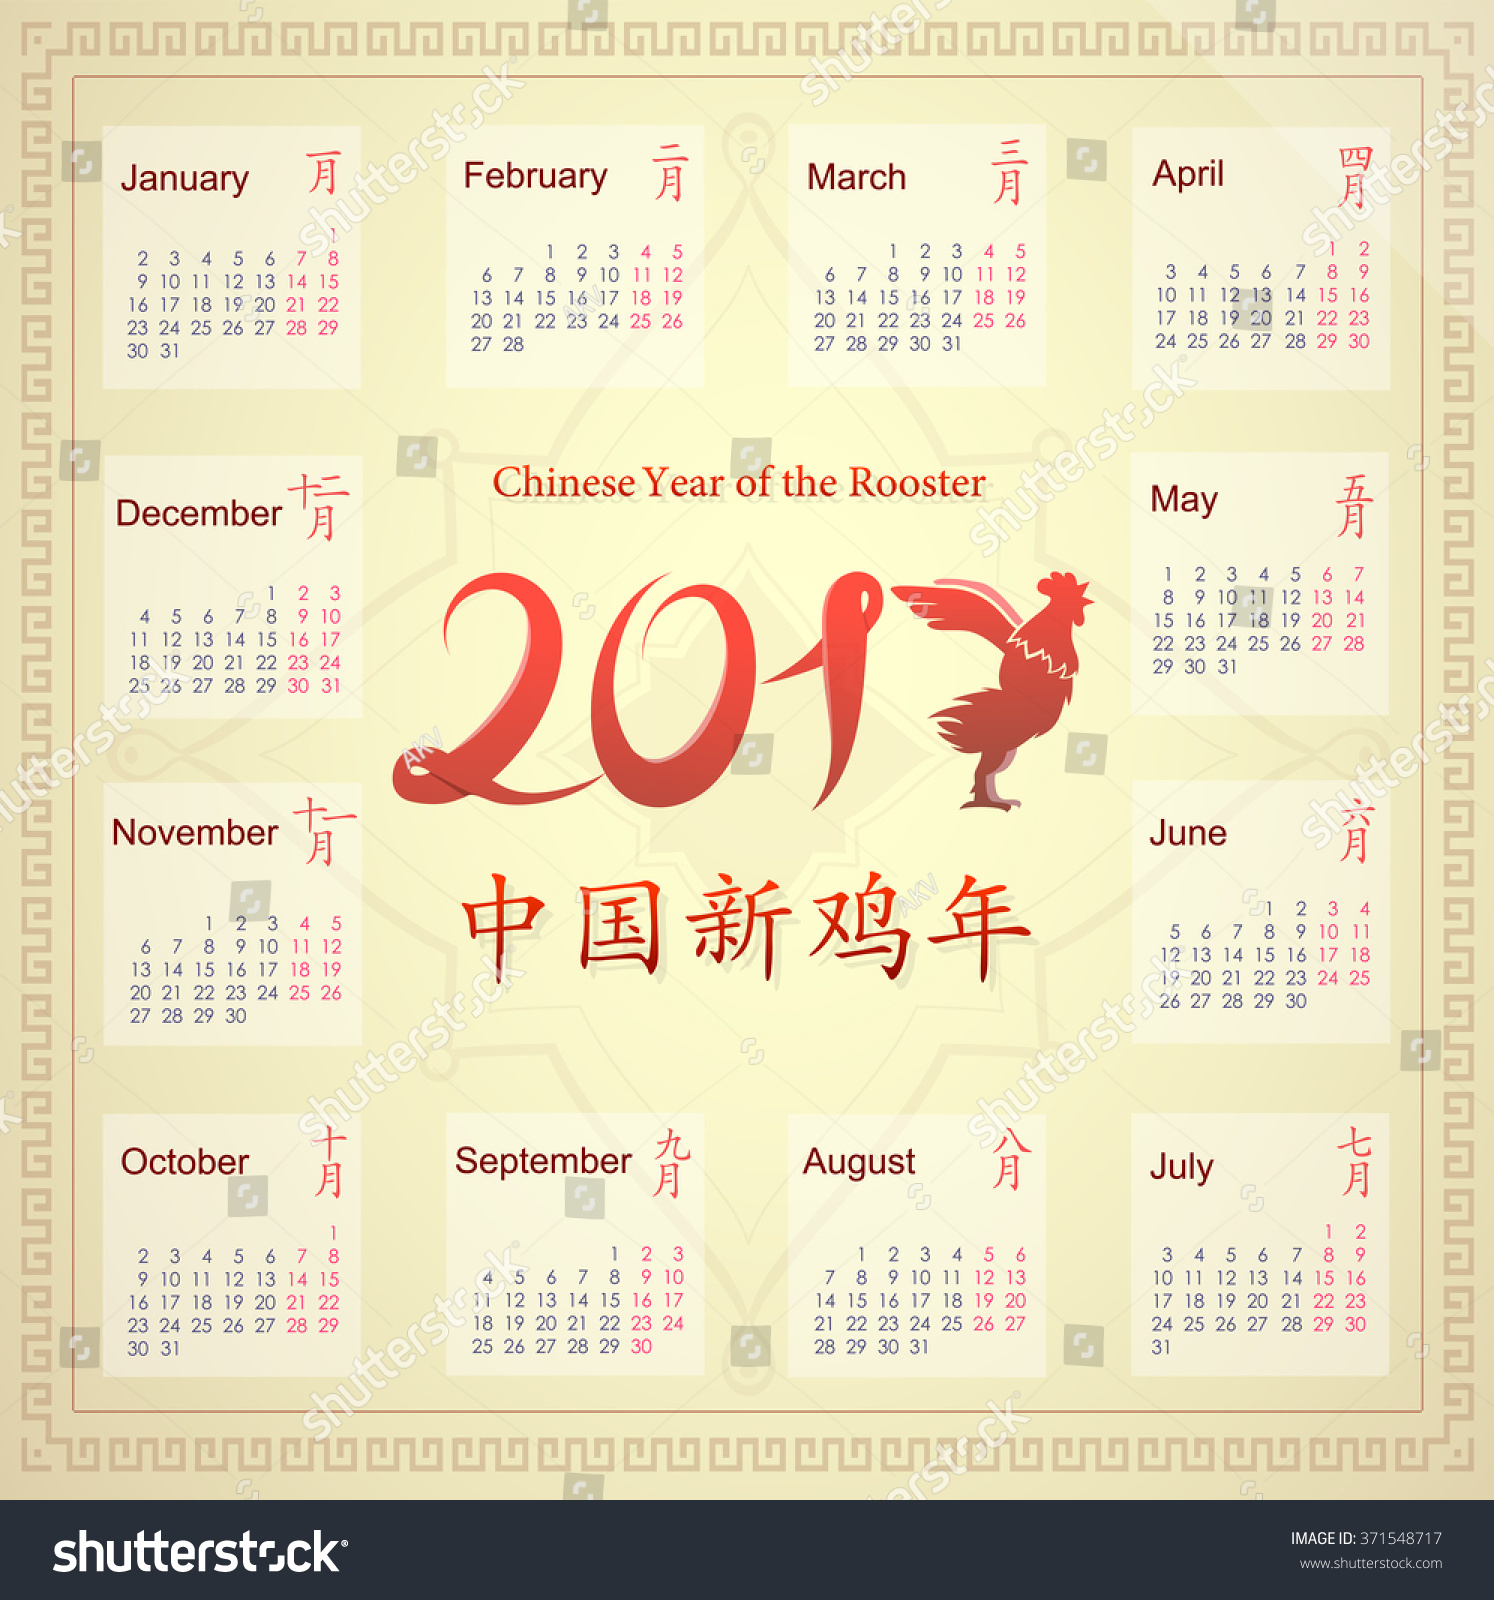 Year Calendar Months : Chinese new year rooster calendar stock vector